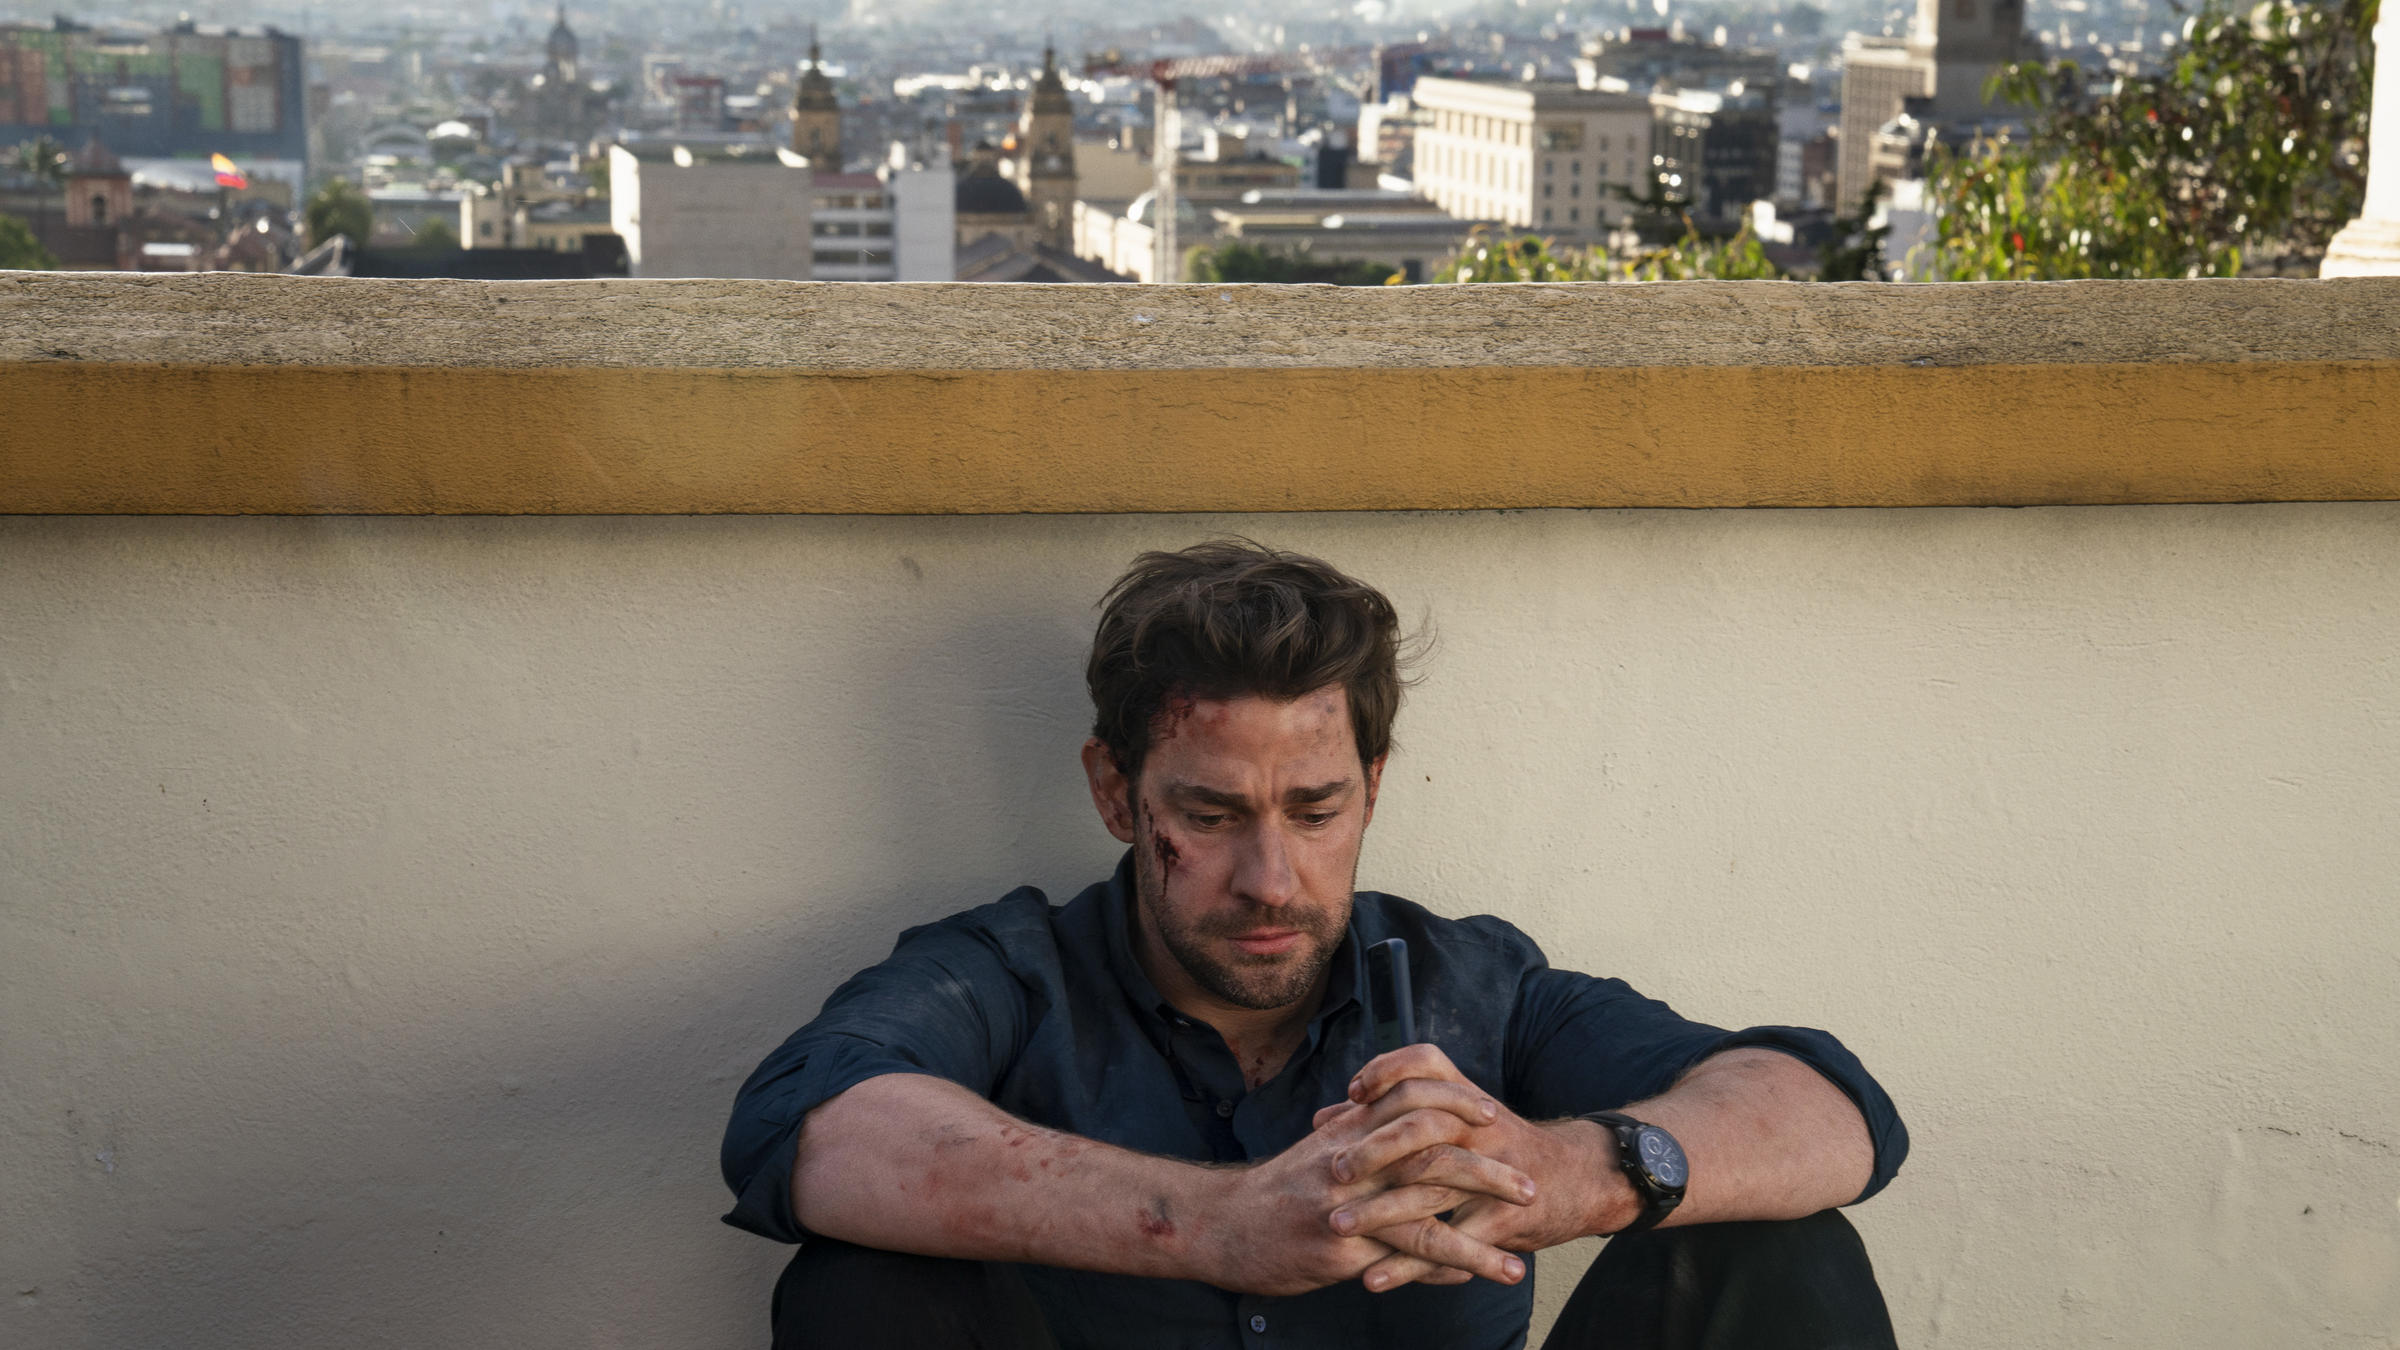 John Krasinski is back as Jack Ryan in season 3